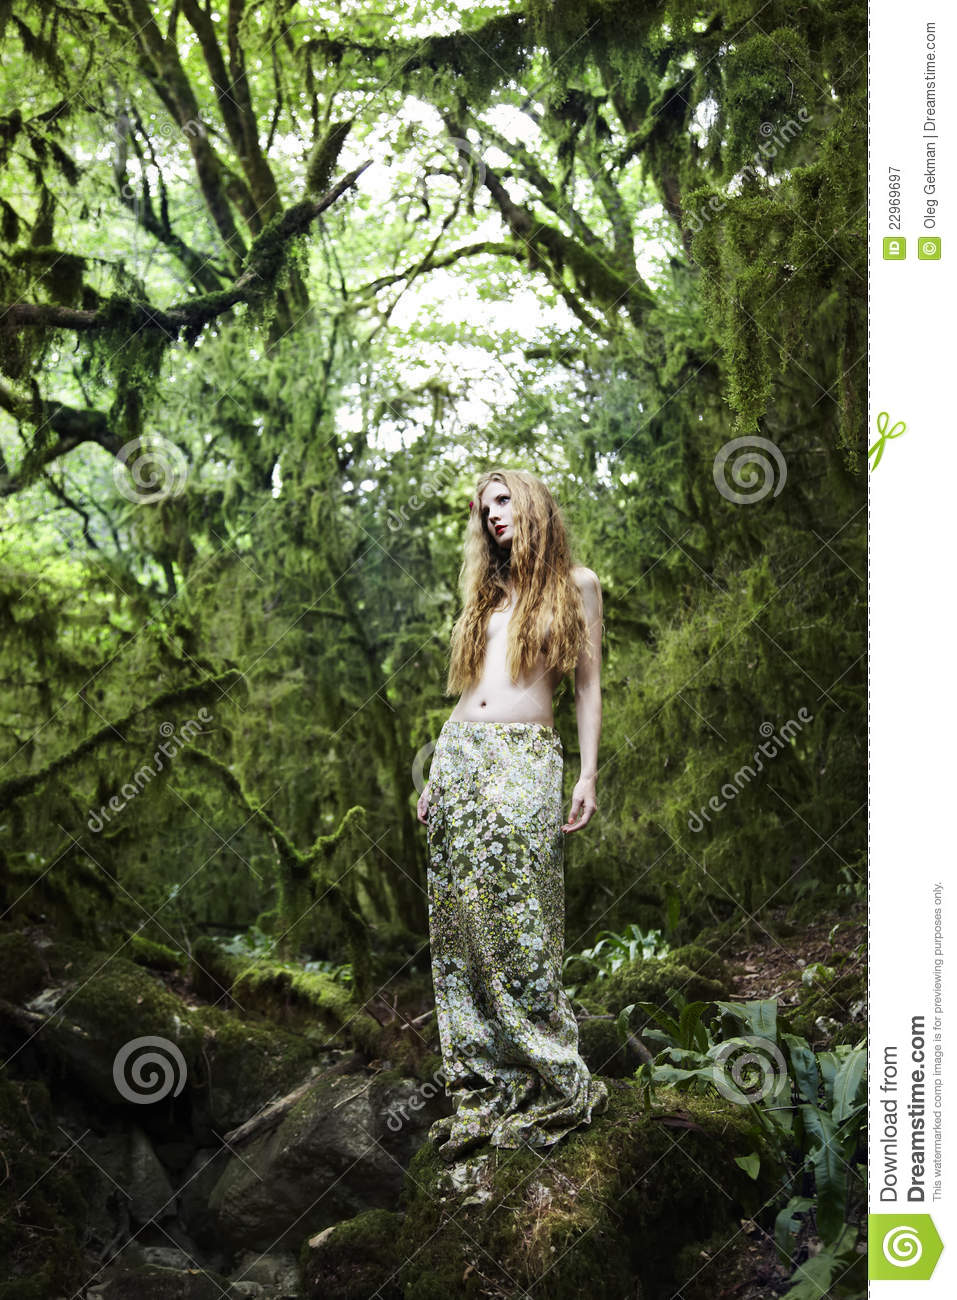 Gorgeous Fall Wallpaper Portrait Of Romantic Woman In Fairy Forest Stock Image